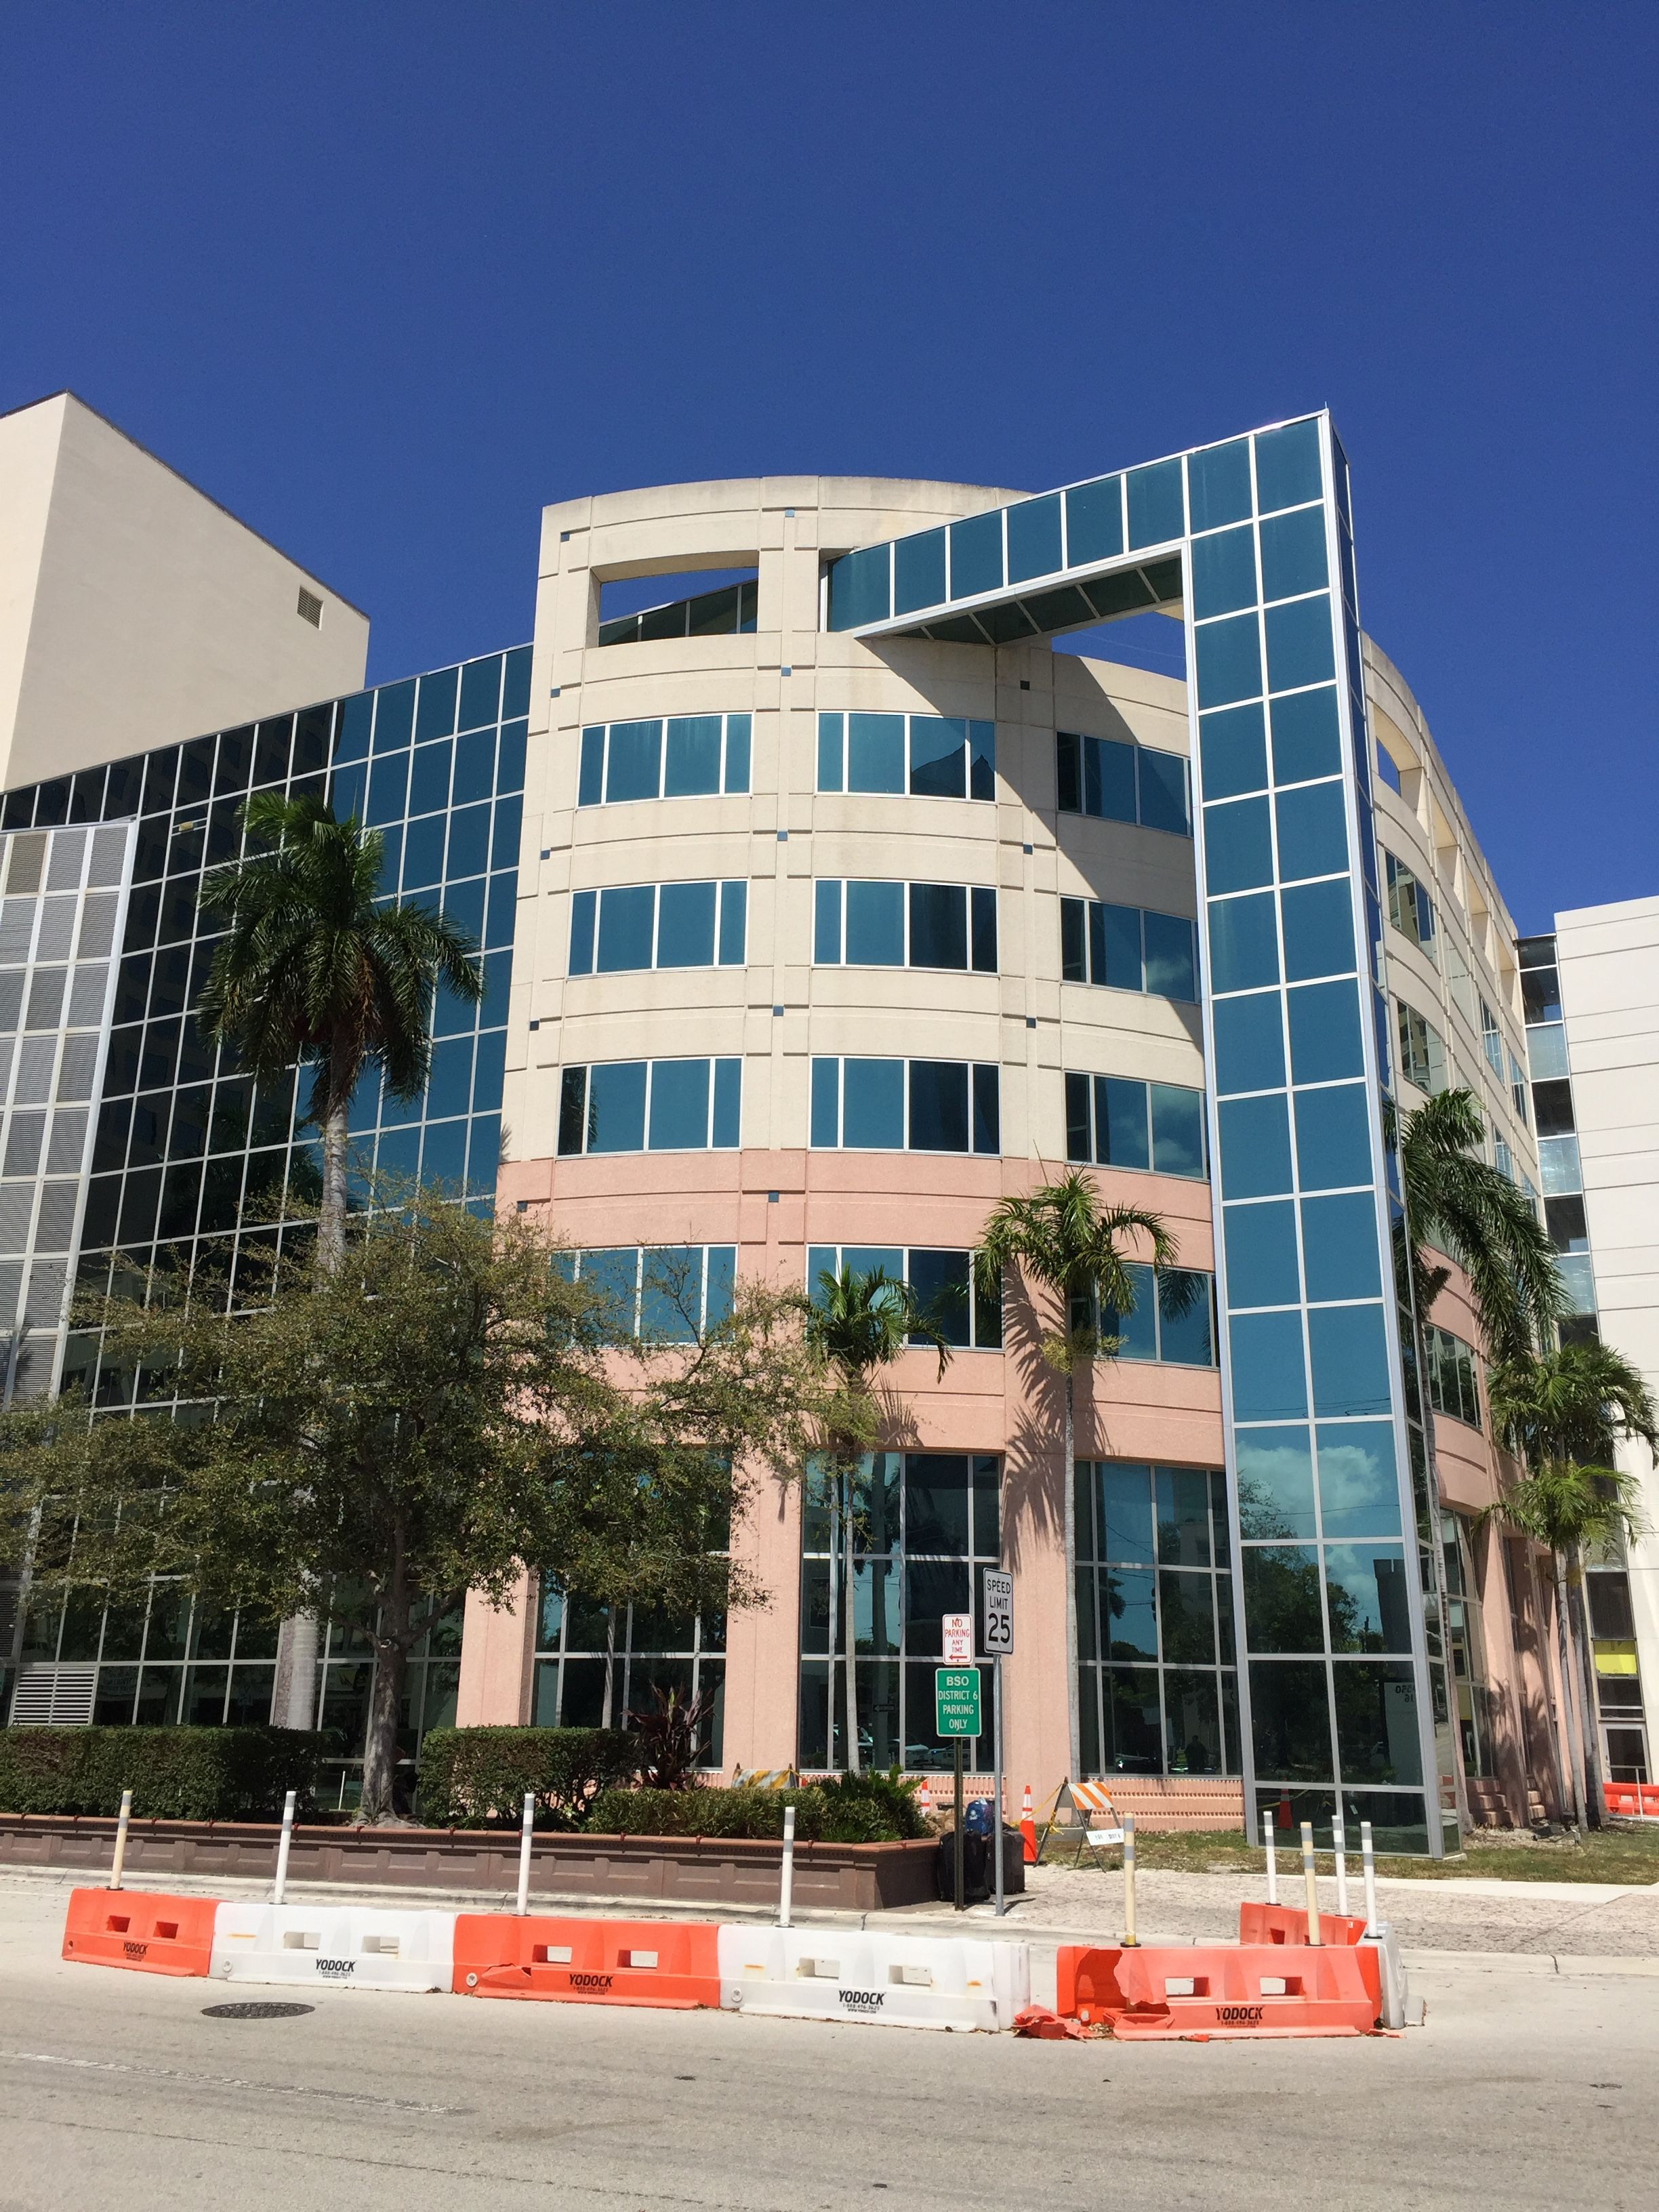 New Broward Courthouse now fully operational - Caribbean News |Broward Courthouse